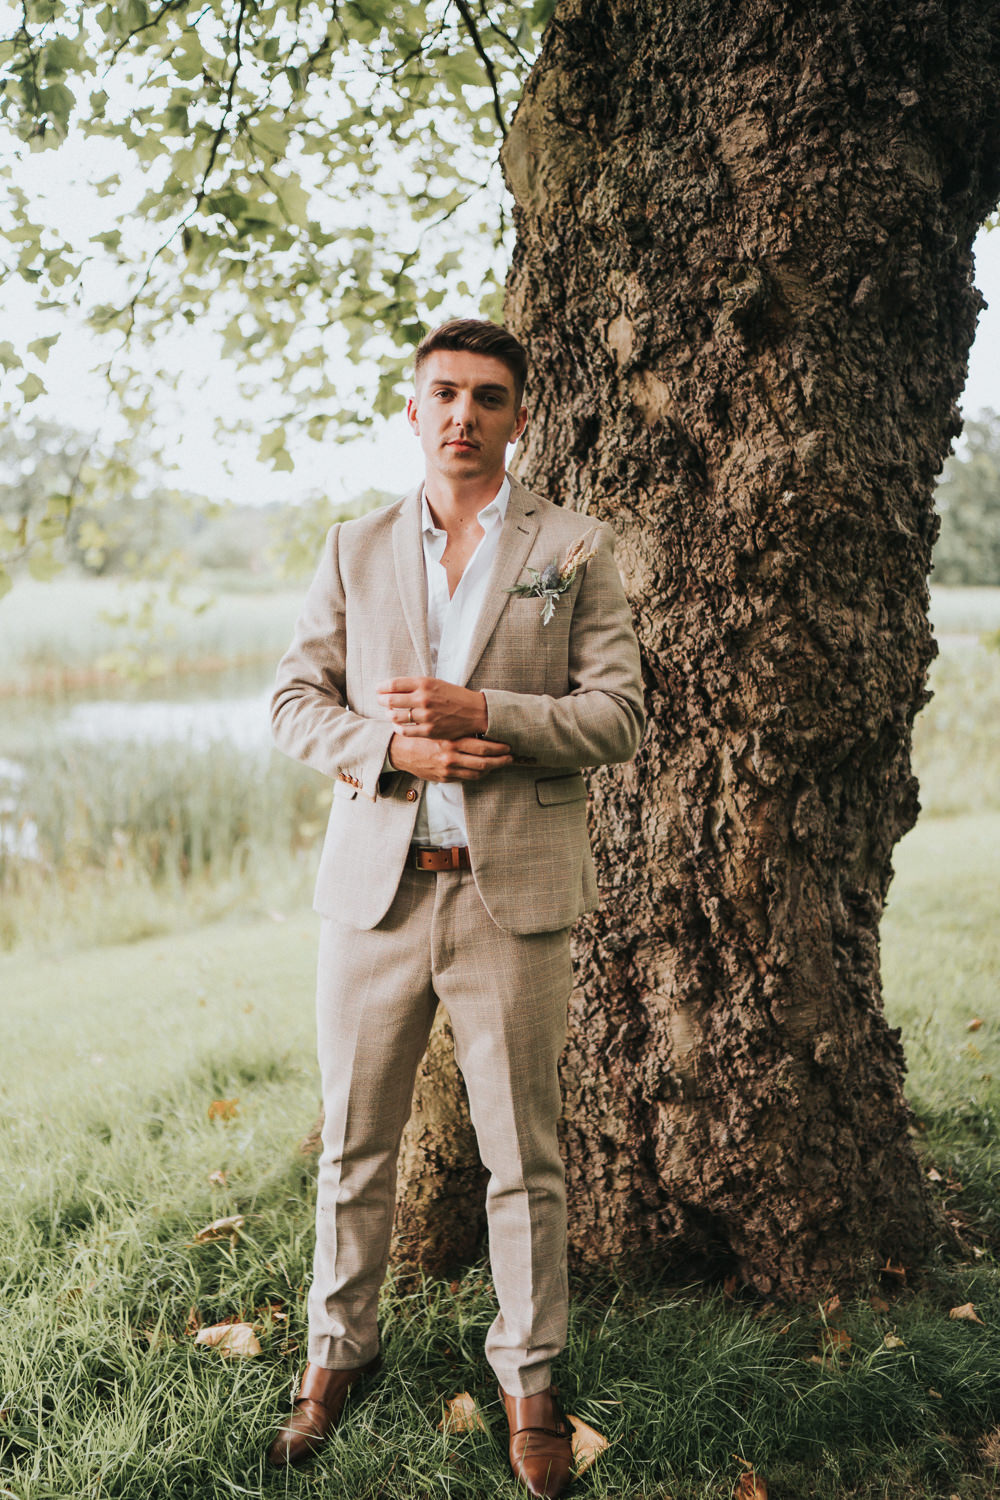 Groom Suit Taupe Check Shirt Open Collar Naked Tipi Wedding Ideas Holly Rose Stones